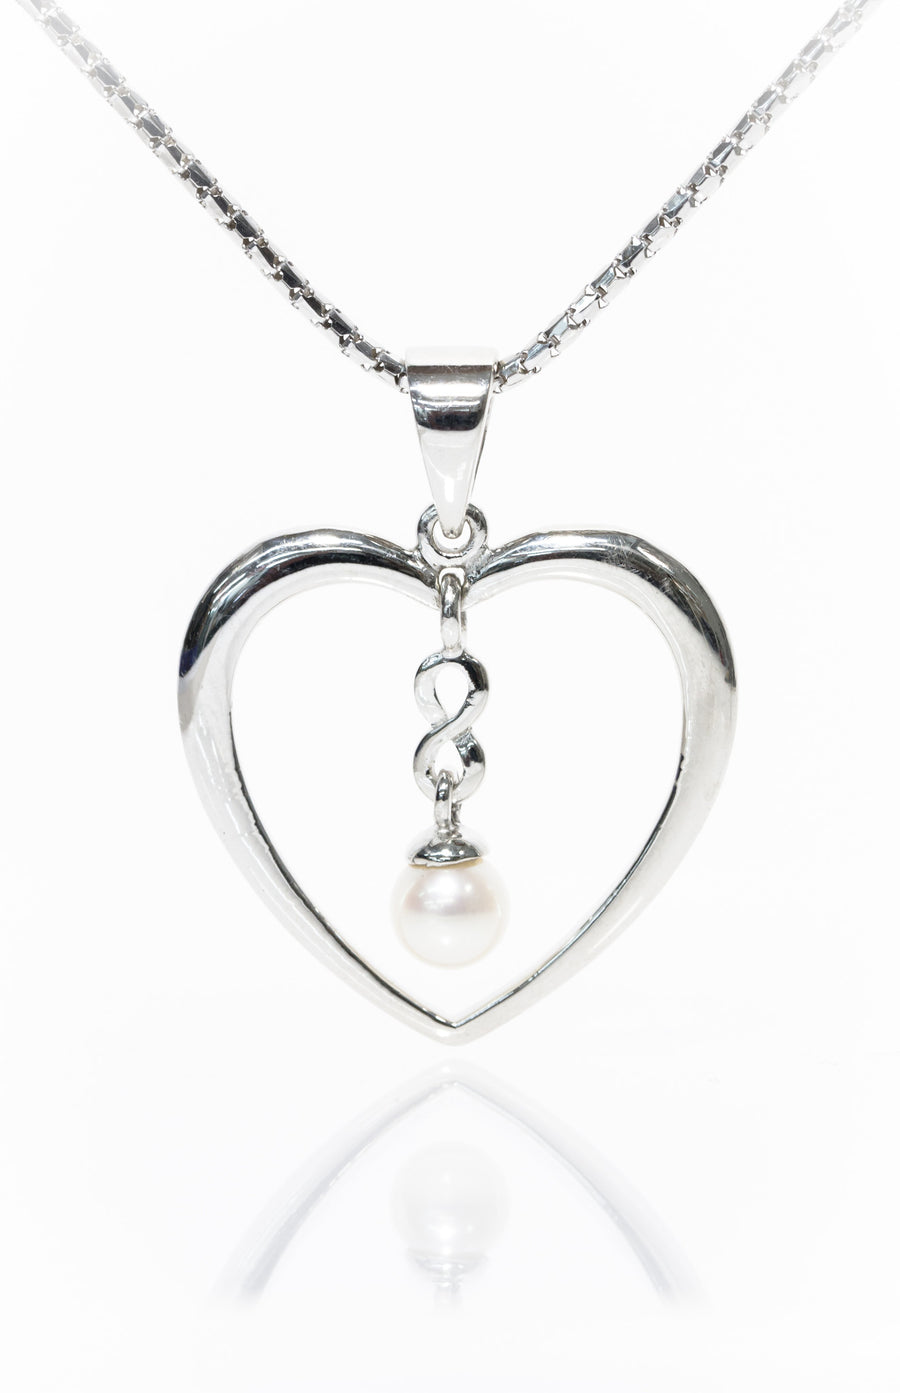 Heart Drop Pearl Pendant from the Infinity Range